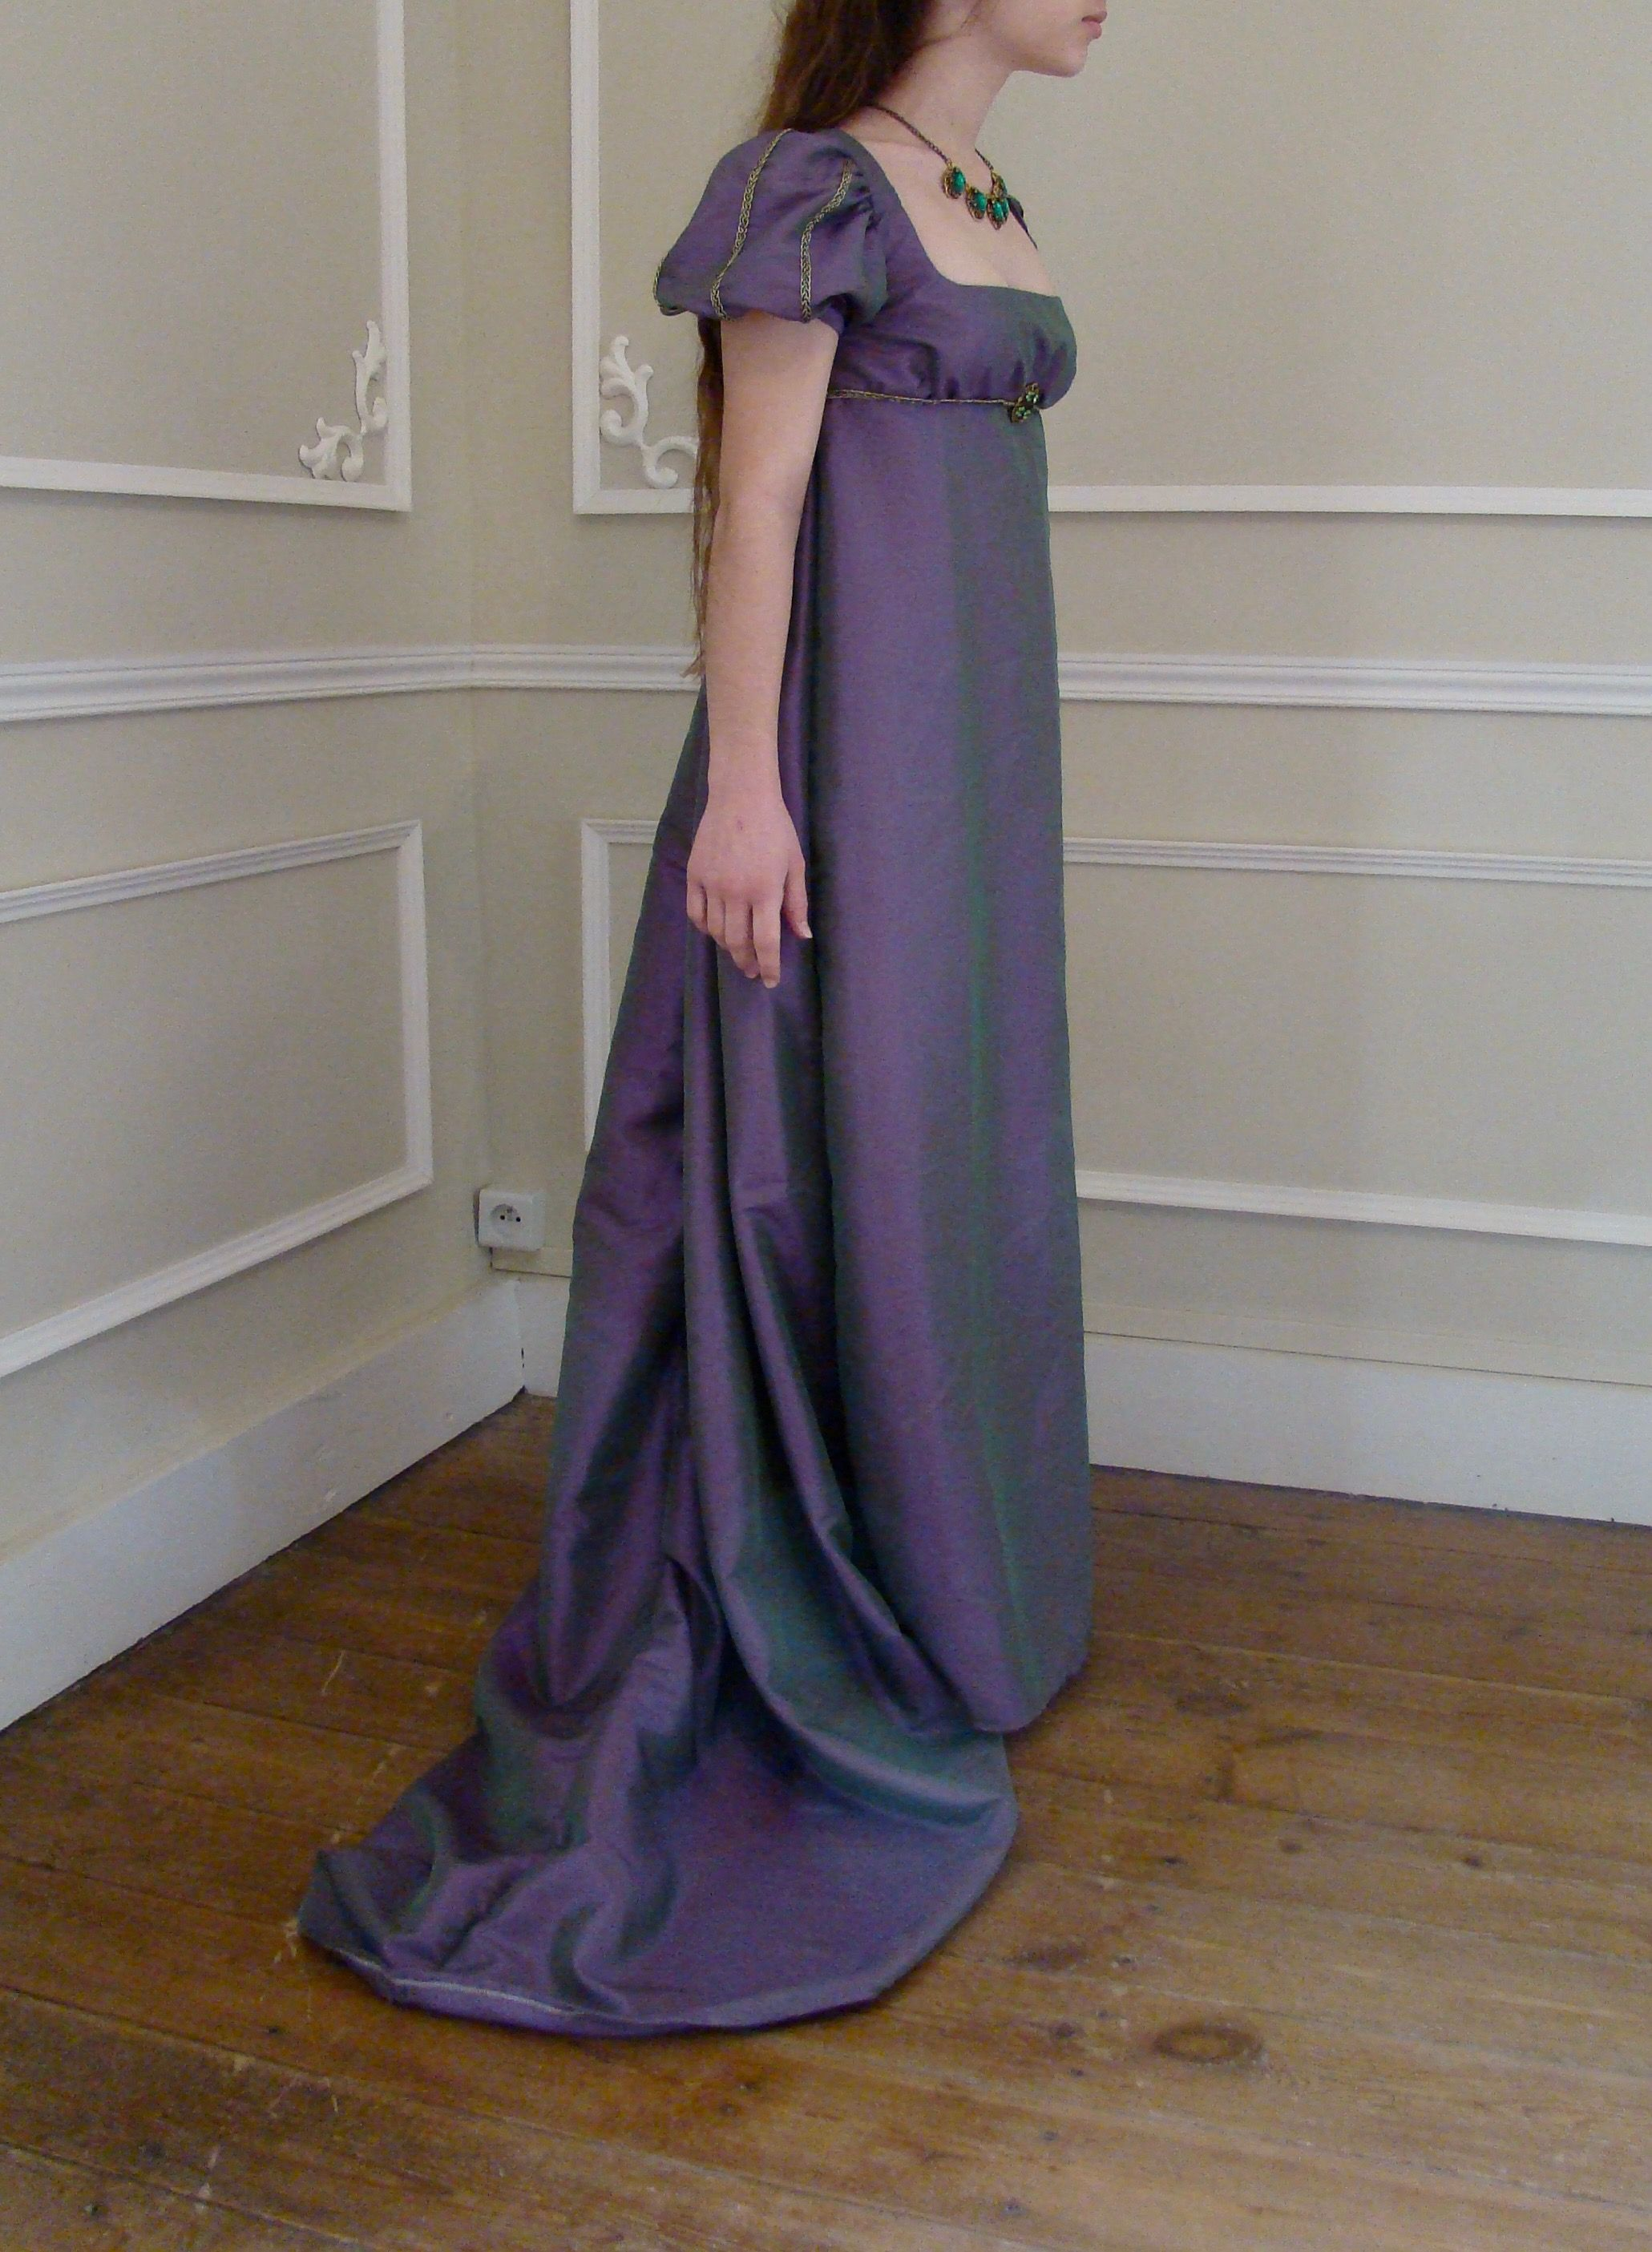 32f3d859e72 First empire dress for woman in purple taffeta. Robe femme 1er empire en  taffetas.